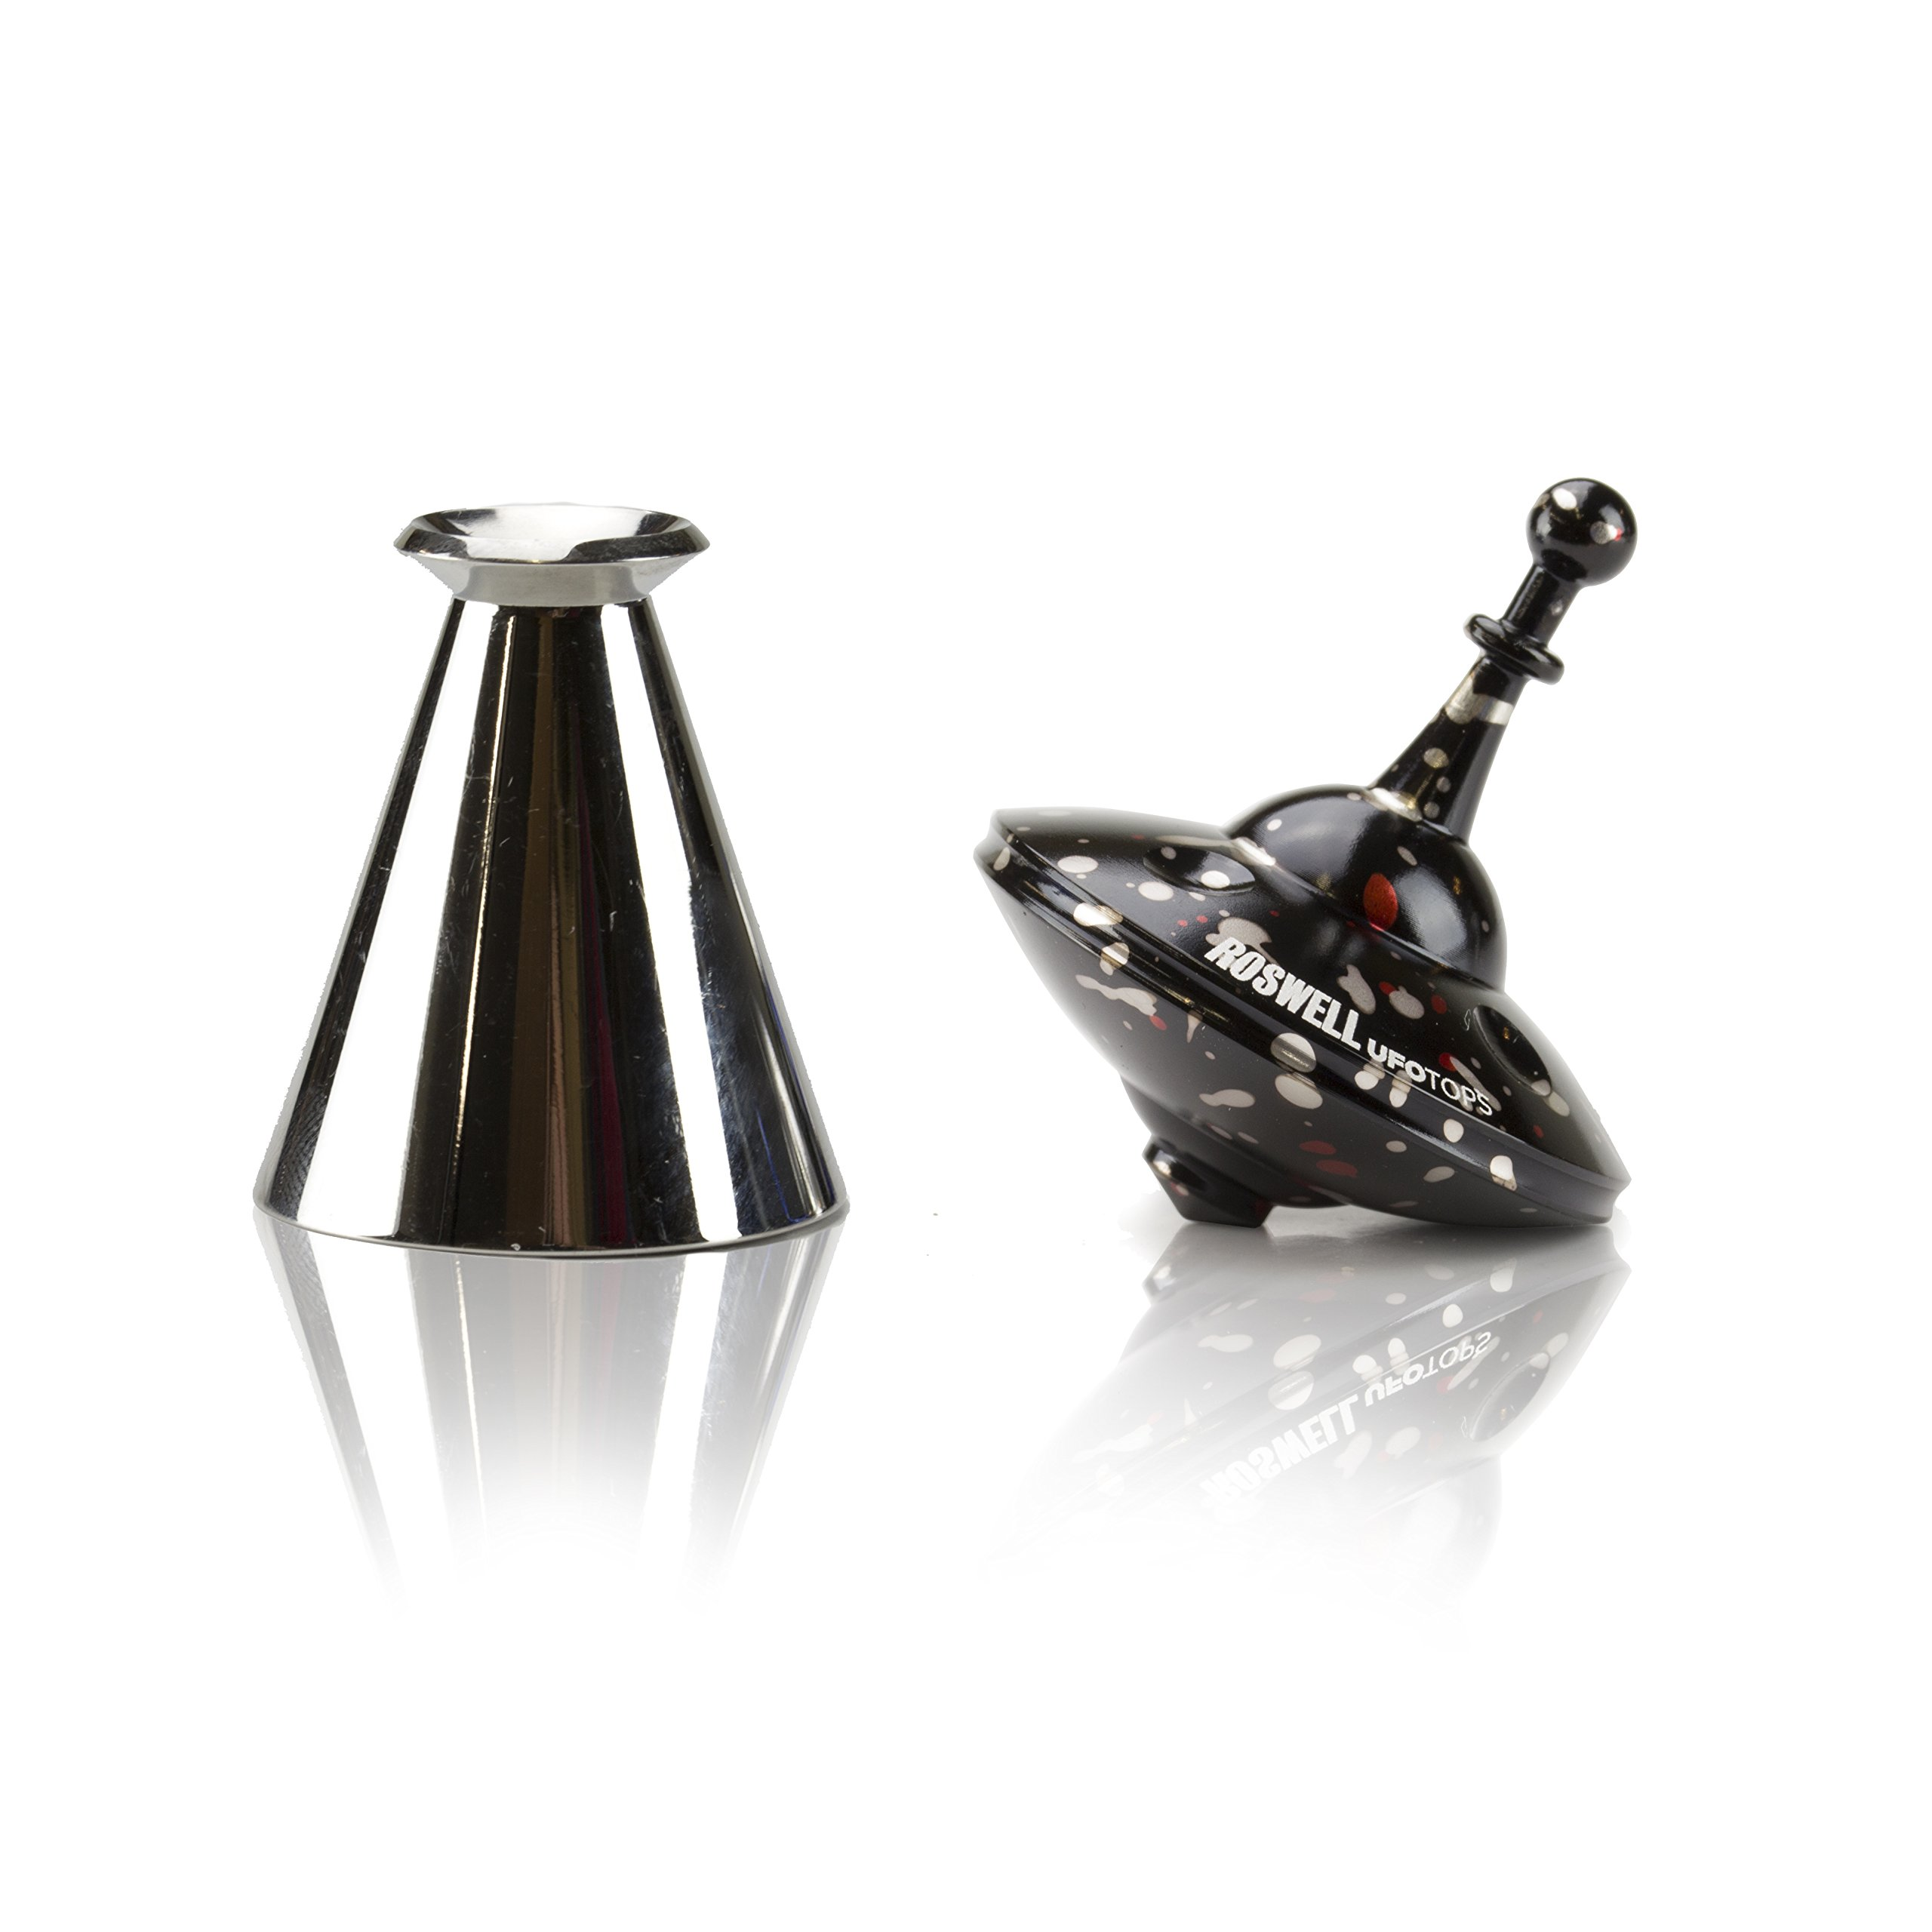 UFO Tops - Metal Spinning Top, Roswell Tarantula Edition with LightRay Base